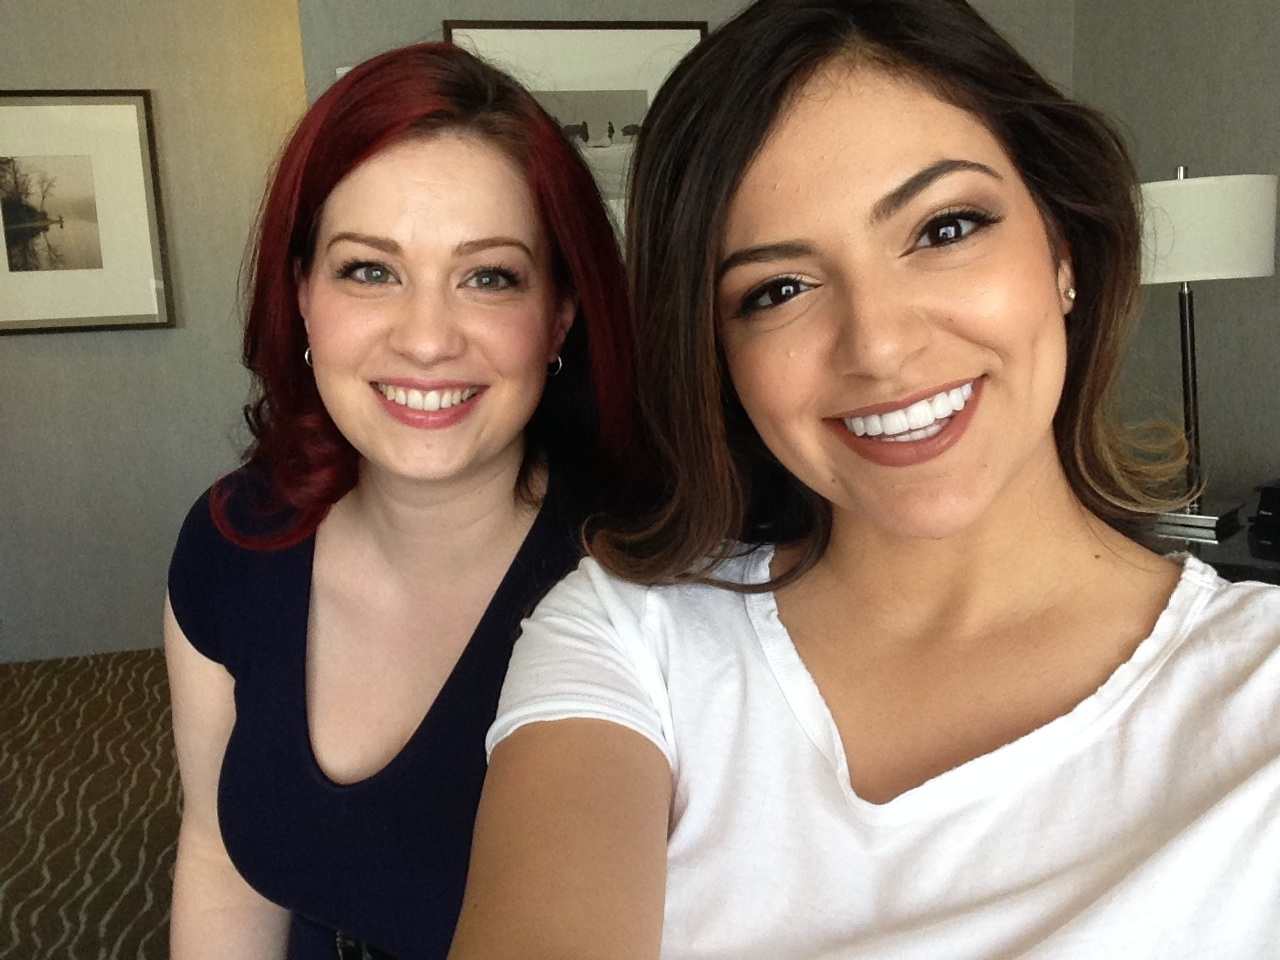 Hair and Makeup artist Kristen of The Beauty Team and Bethany Mota press ready!